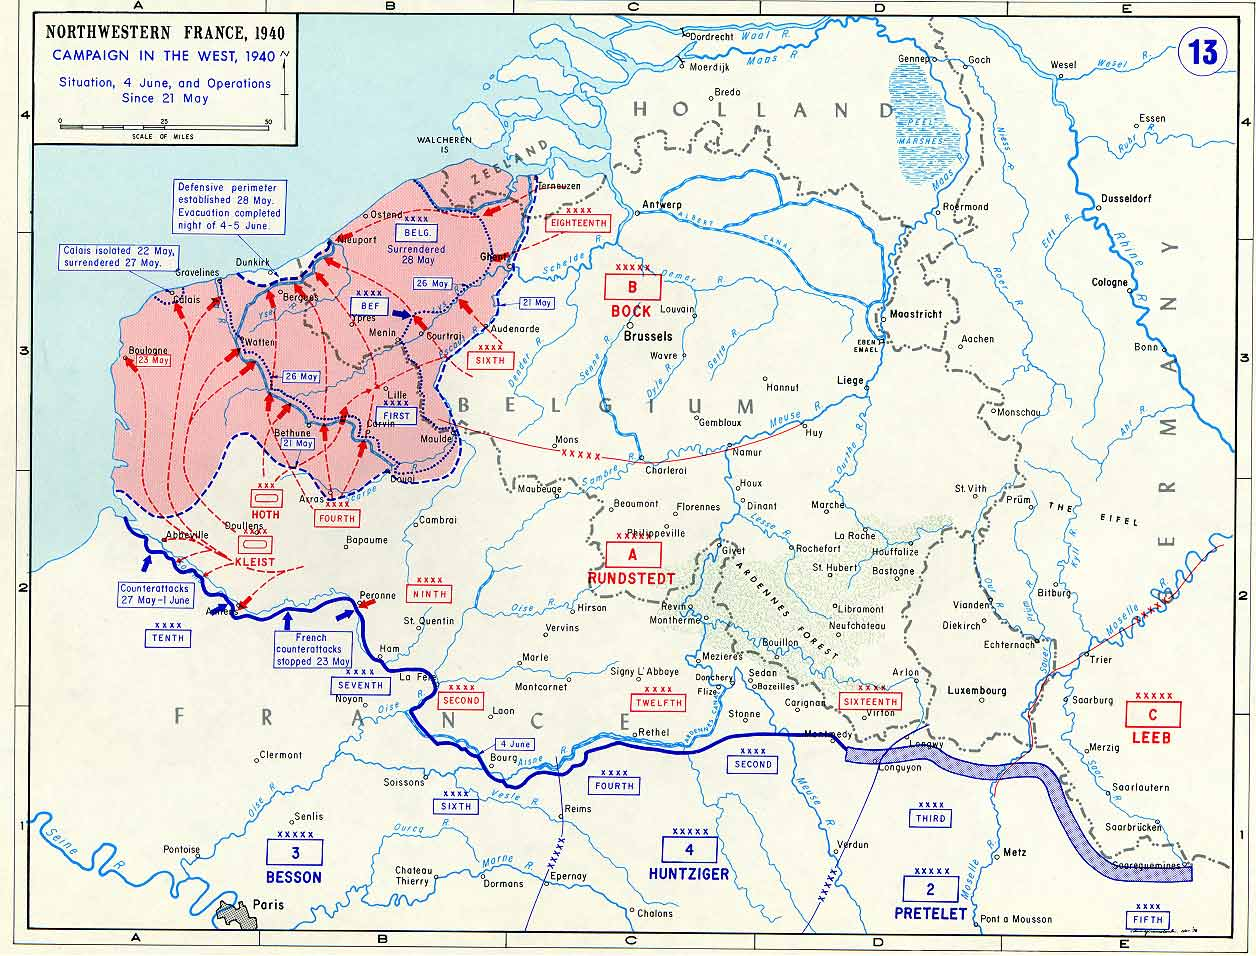 in may 21 230 000 british soldiers and around 180 000 french soldiers were separated from the rest of the allied army in the red zone of the map